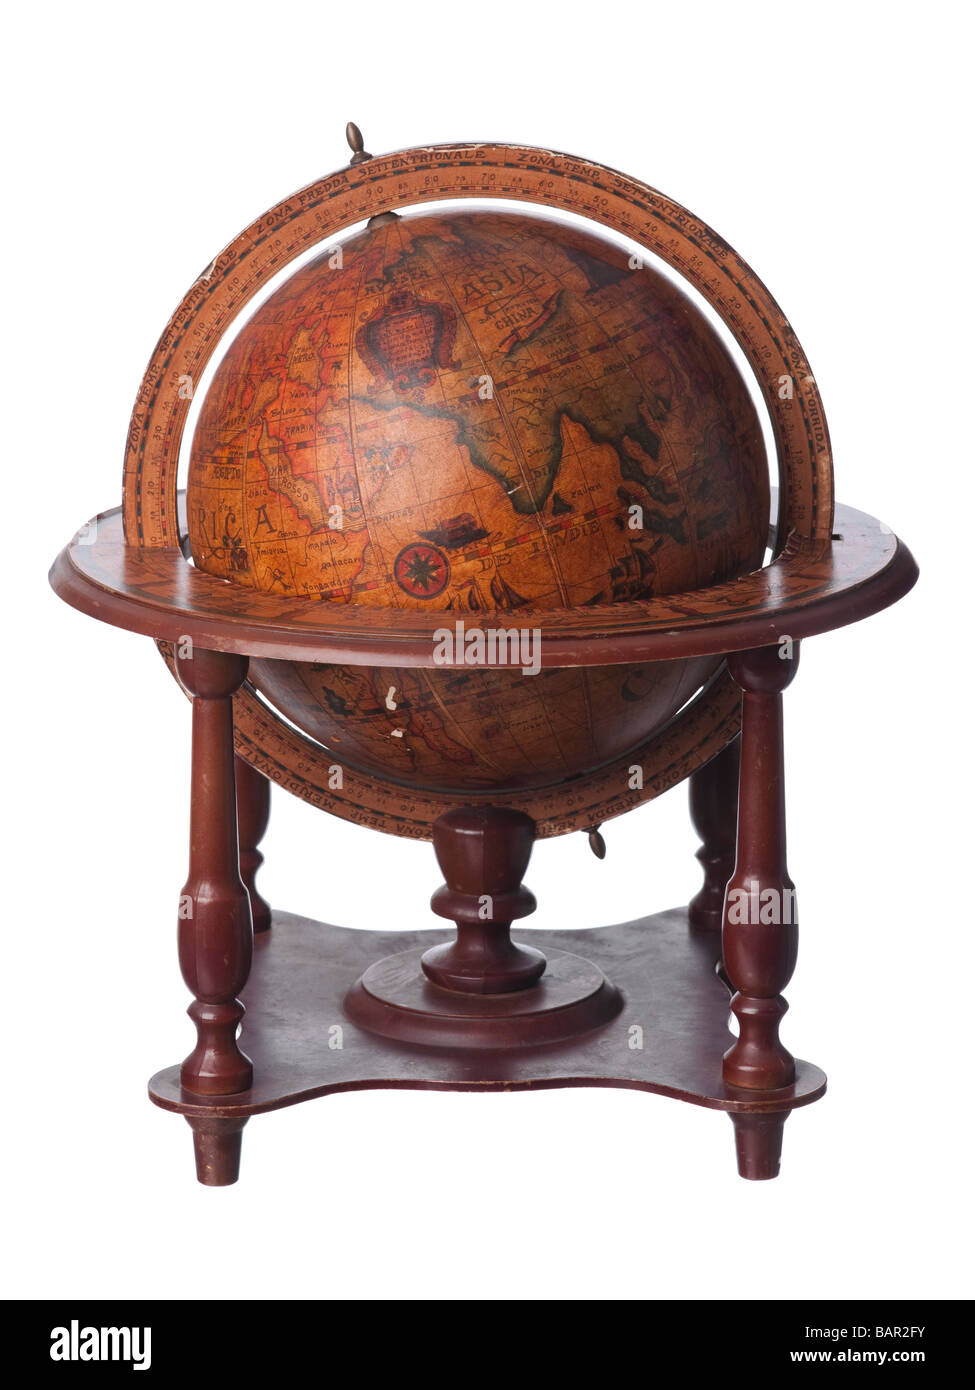 Vintage old earth globe showing Asia - Stock Image